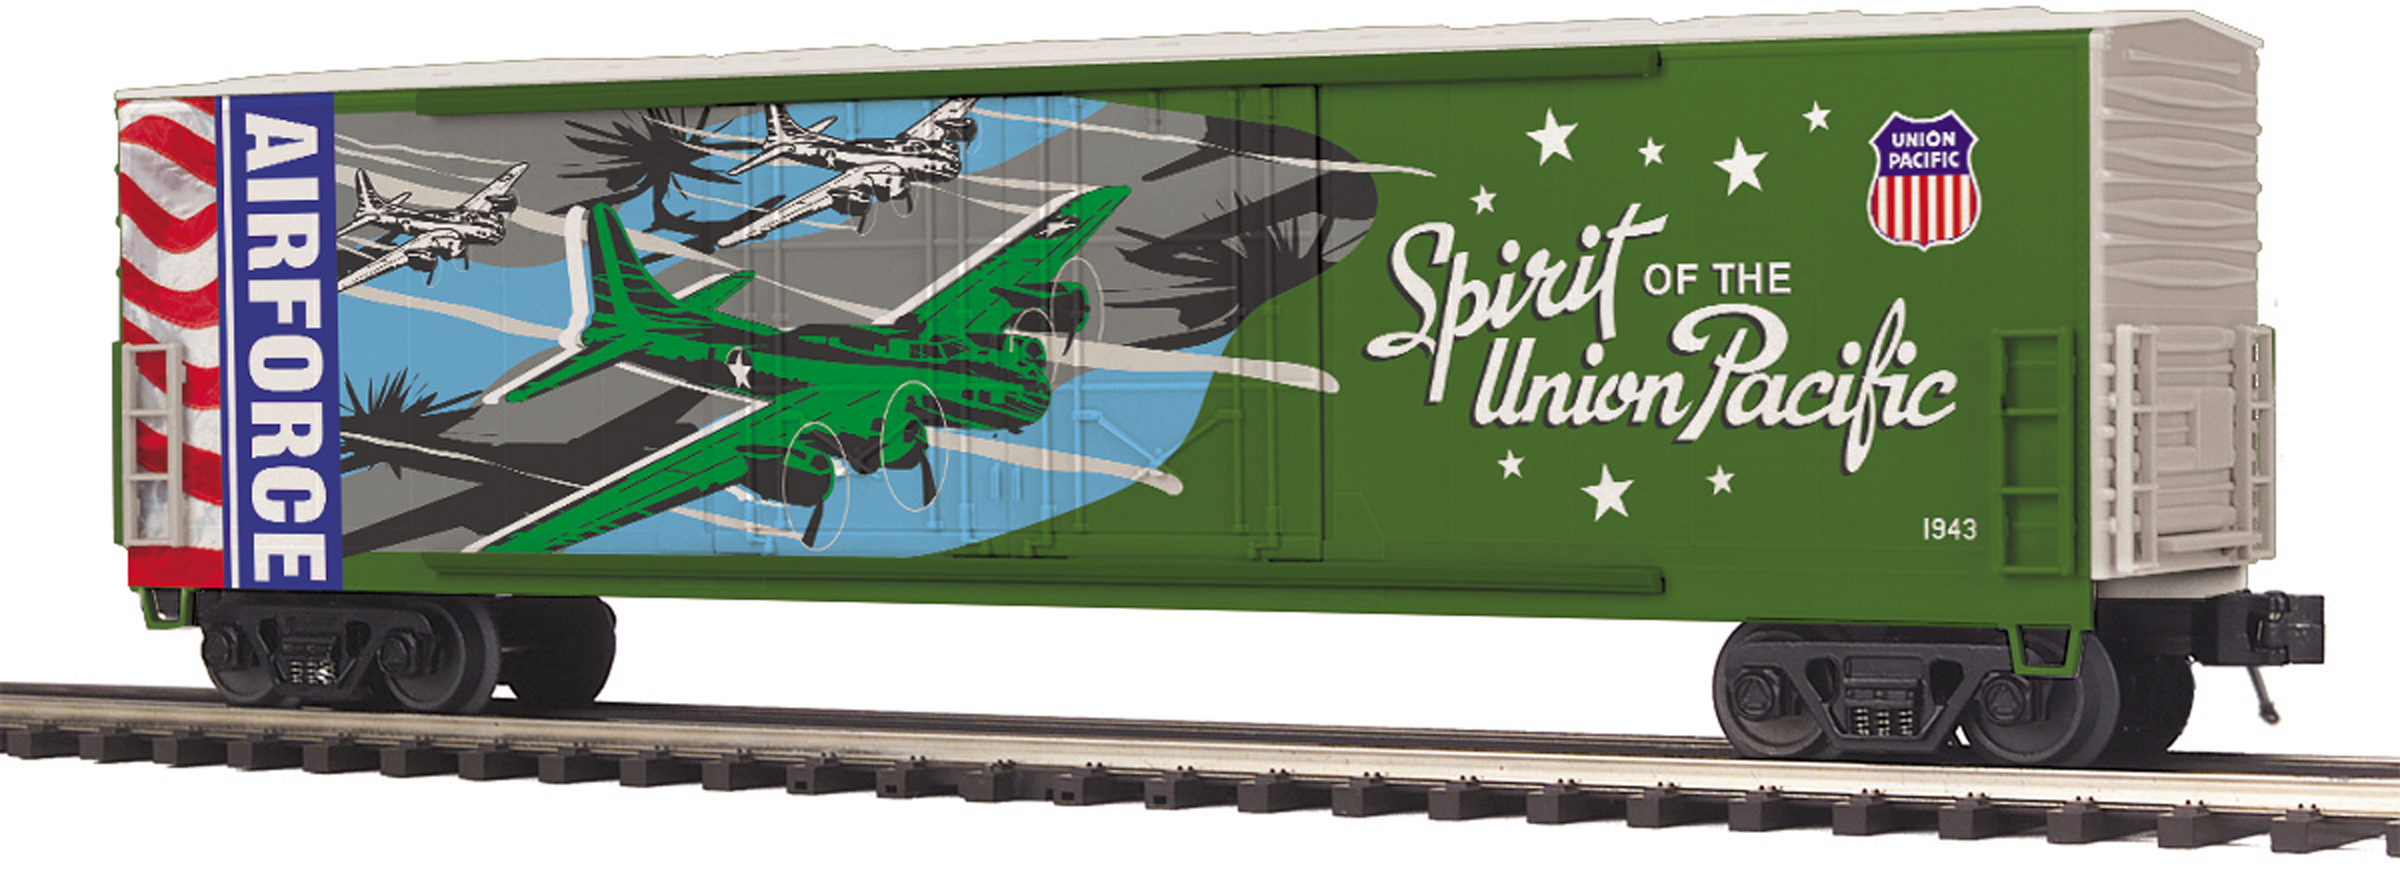 MTH 2093752 O 50' Double-Plug-Door Boxcar 3-Rail RTR Premier Union Pacific Air Force Commemorative 507-2093752